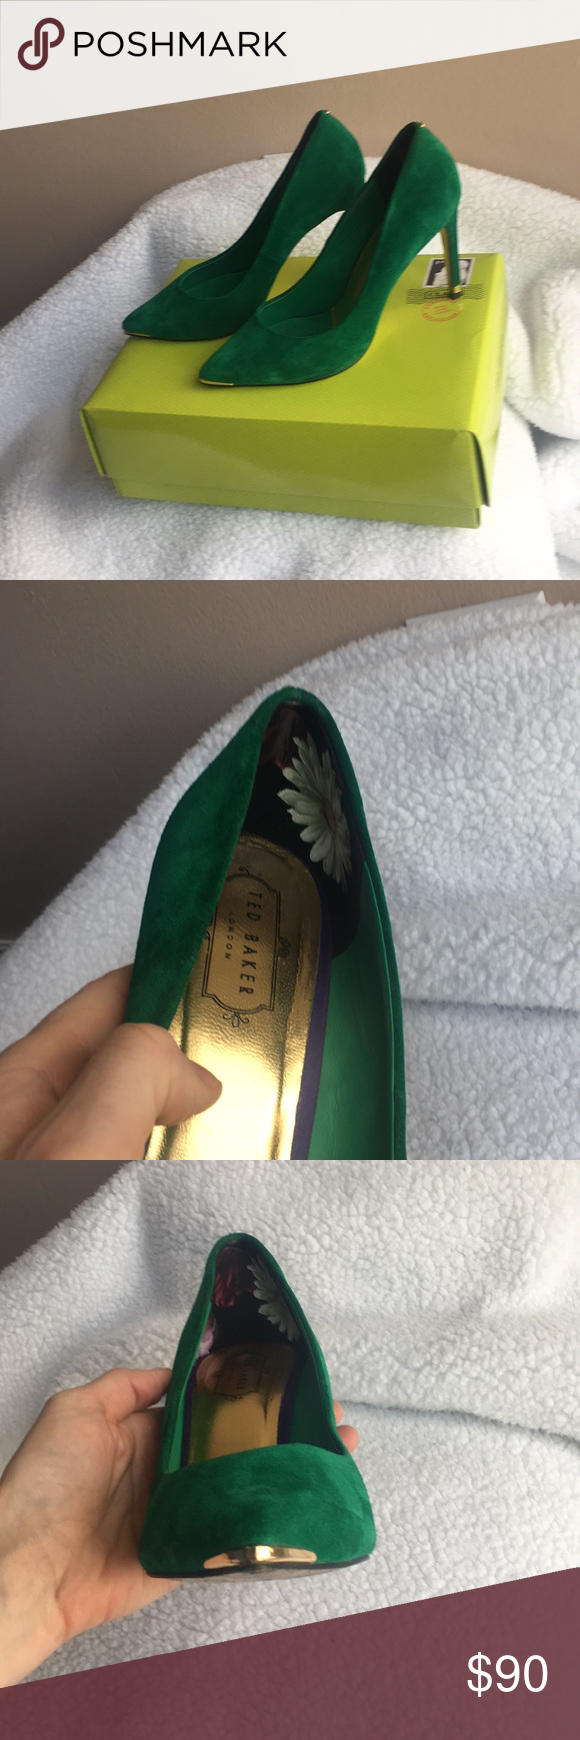 d0d43596ac3242 Lime green Ted Baker stilettos Lime green suede Ted Baker stilettos with  gold accent on toe and base of heel. In box. Good condition worn only twice.